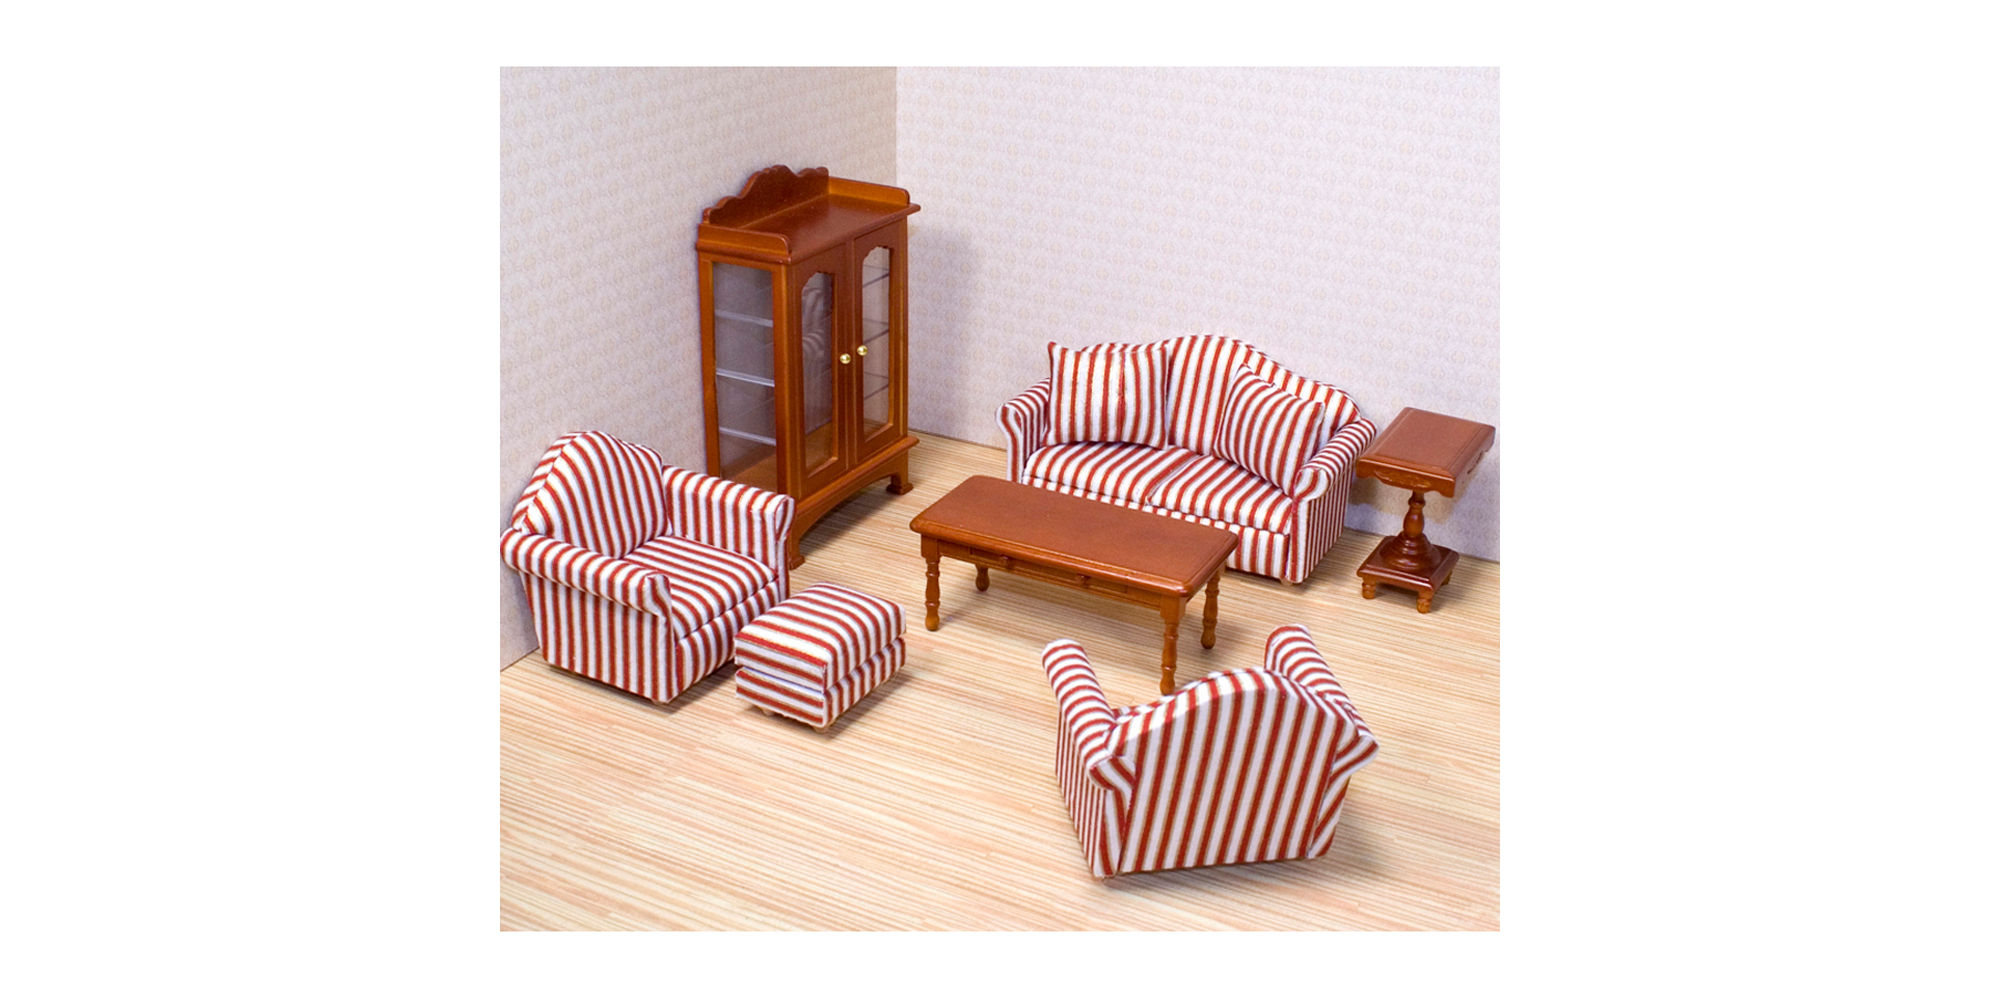 Melissa & Doug Living Room Dollhouse Furniture